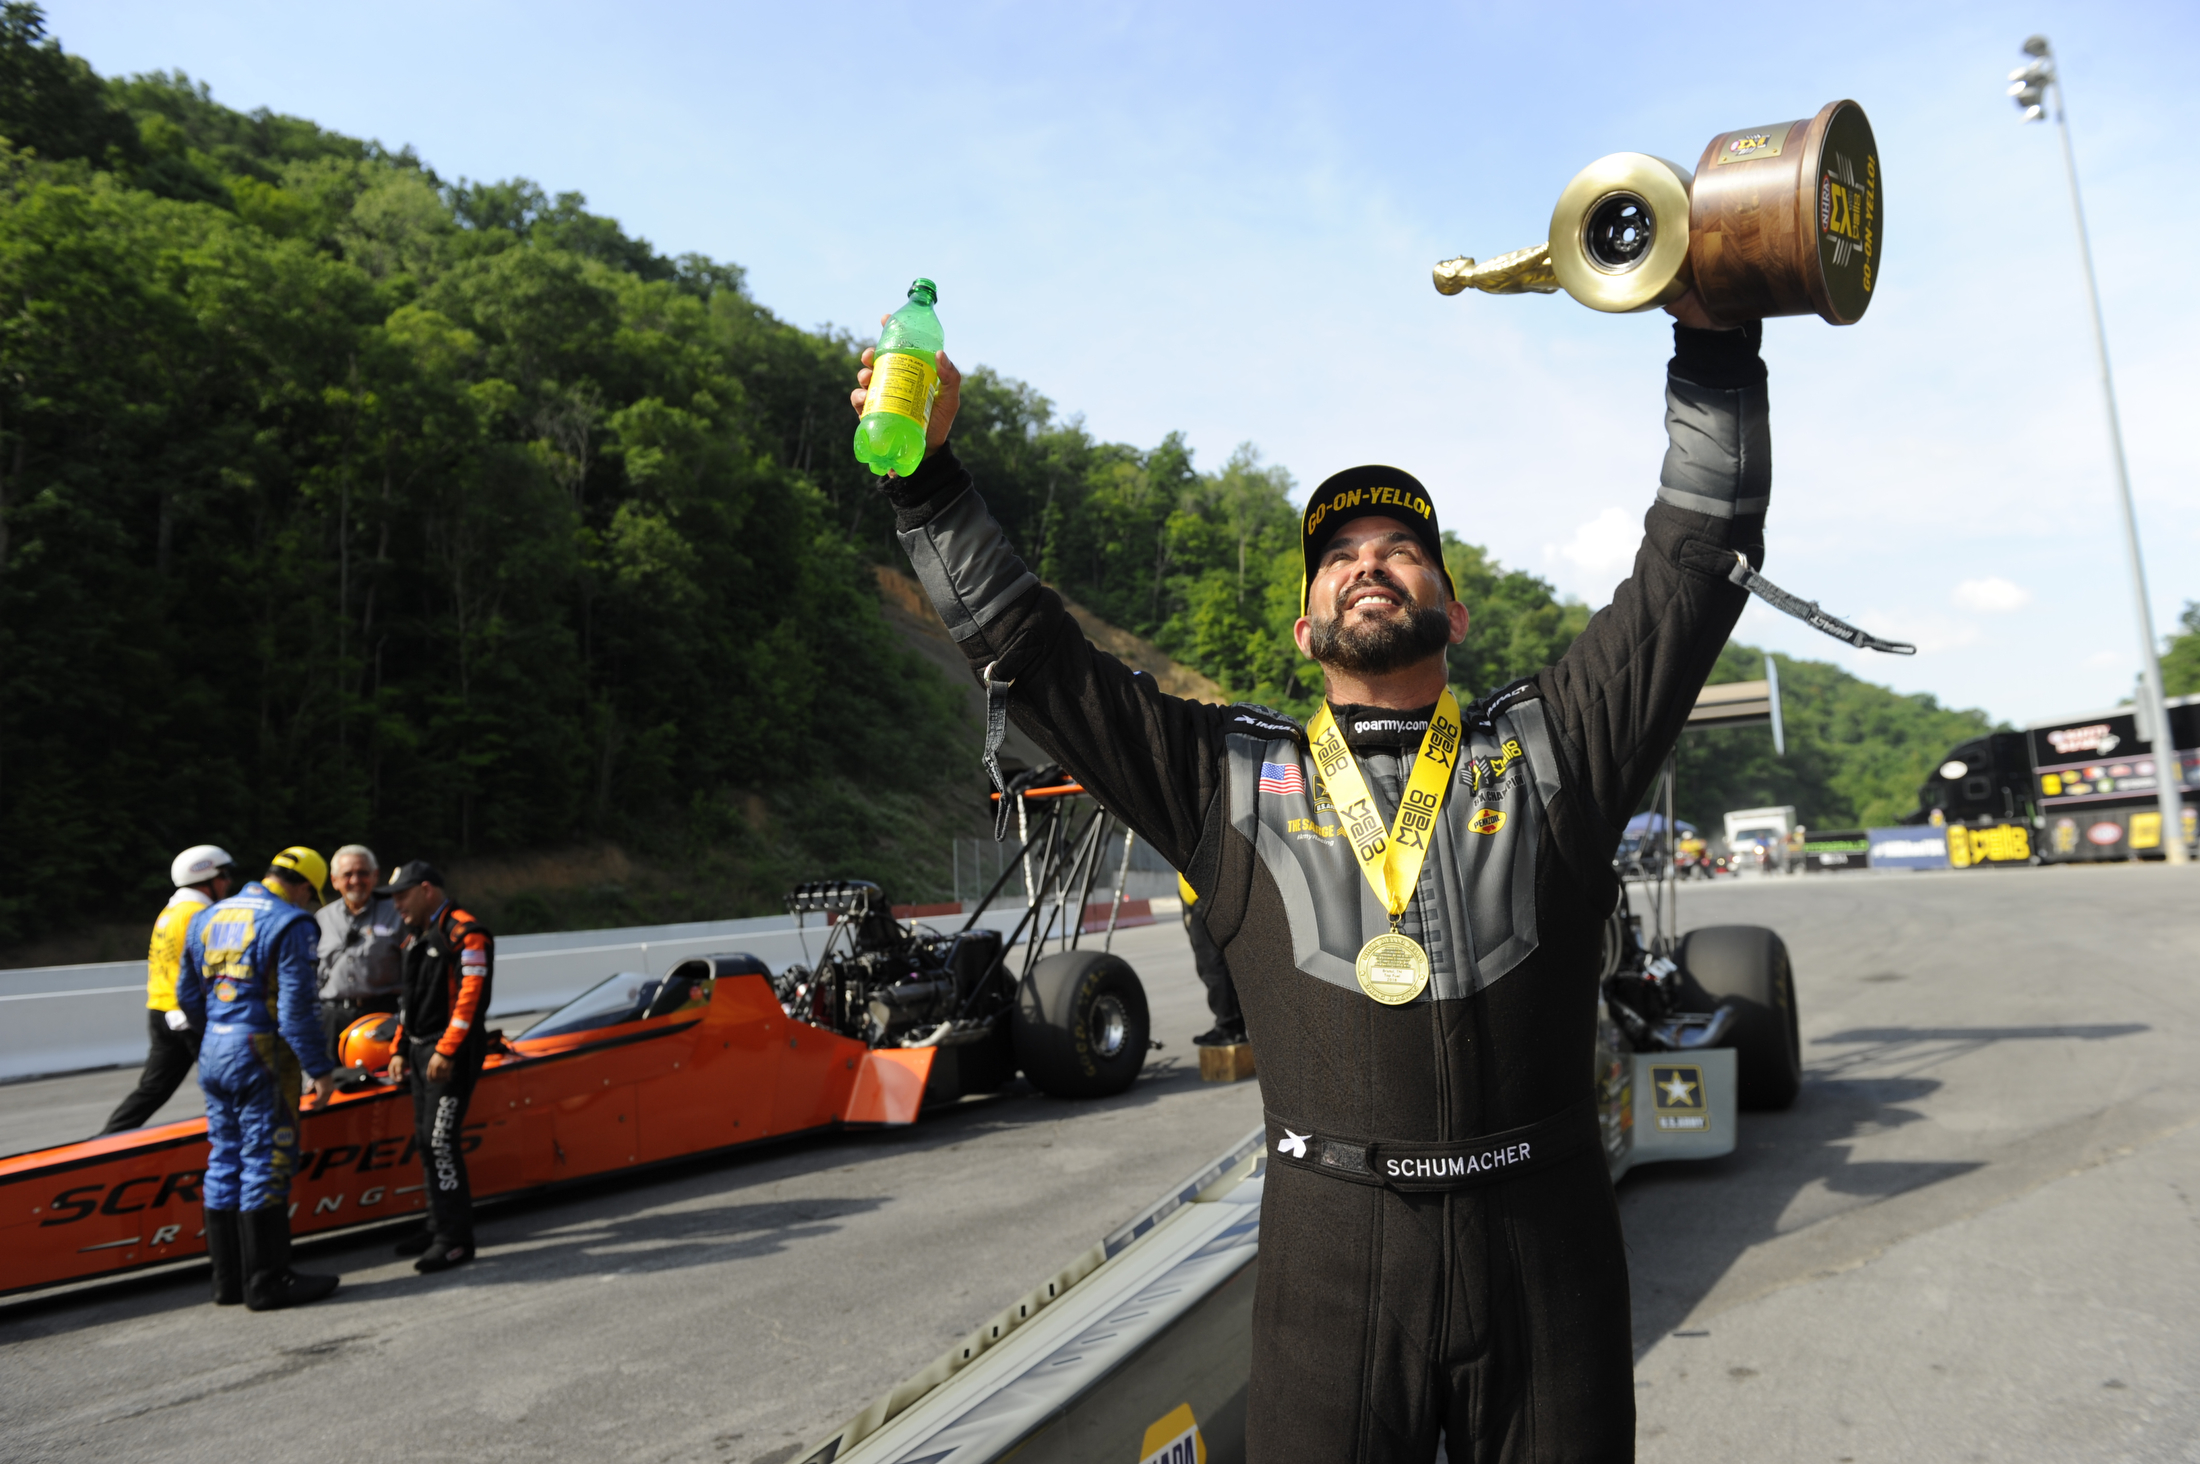 U.S. Army Top Fuel Dragster pilot Tony Schumacher after winning the Fitzgerald USA NHRA Thunder Valley Nationals